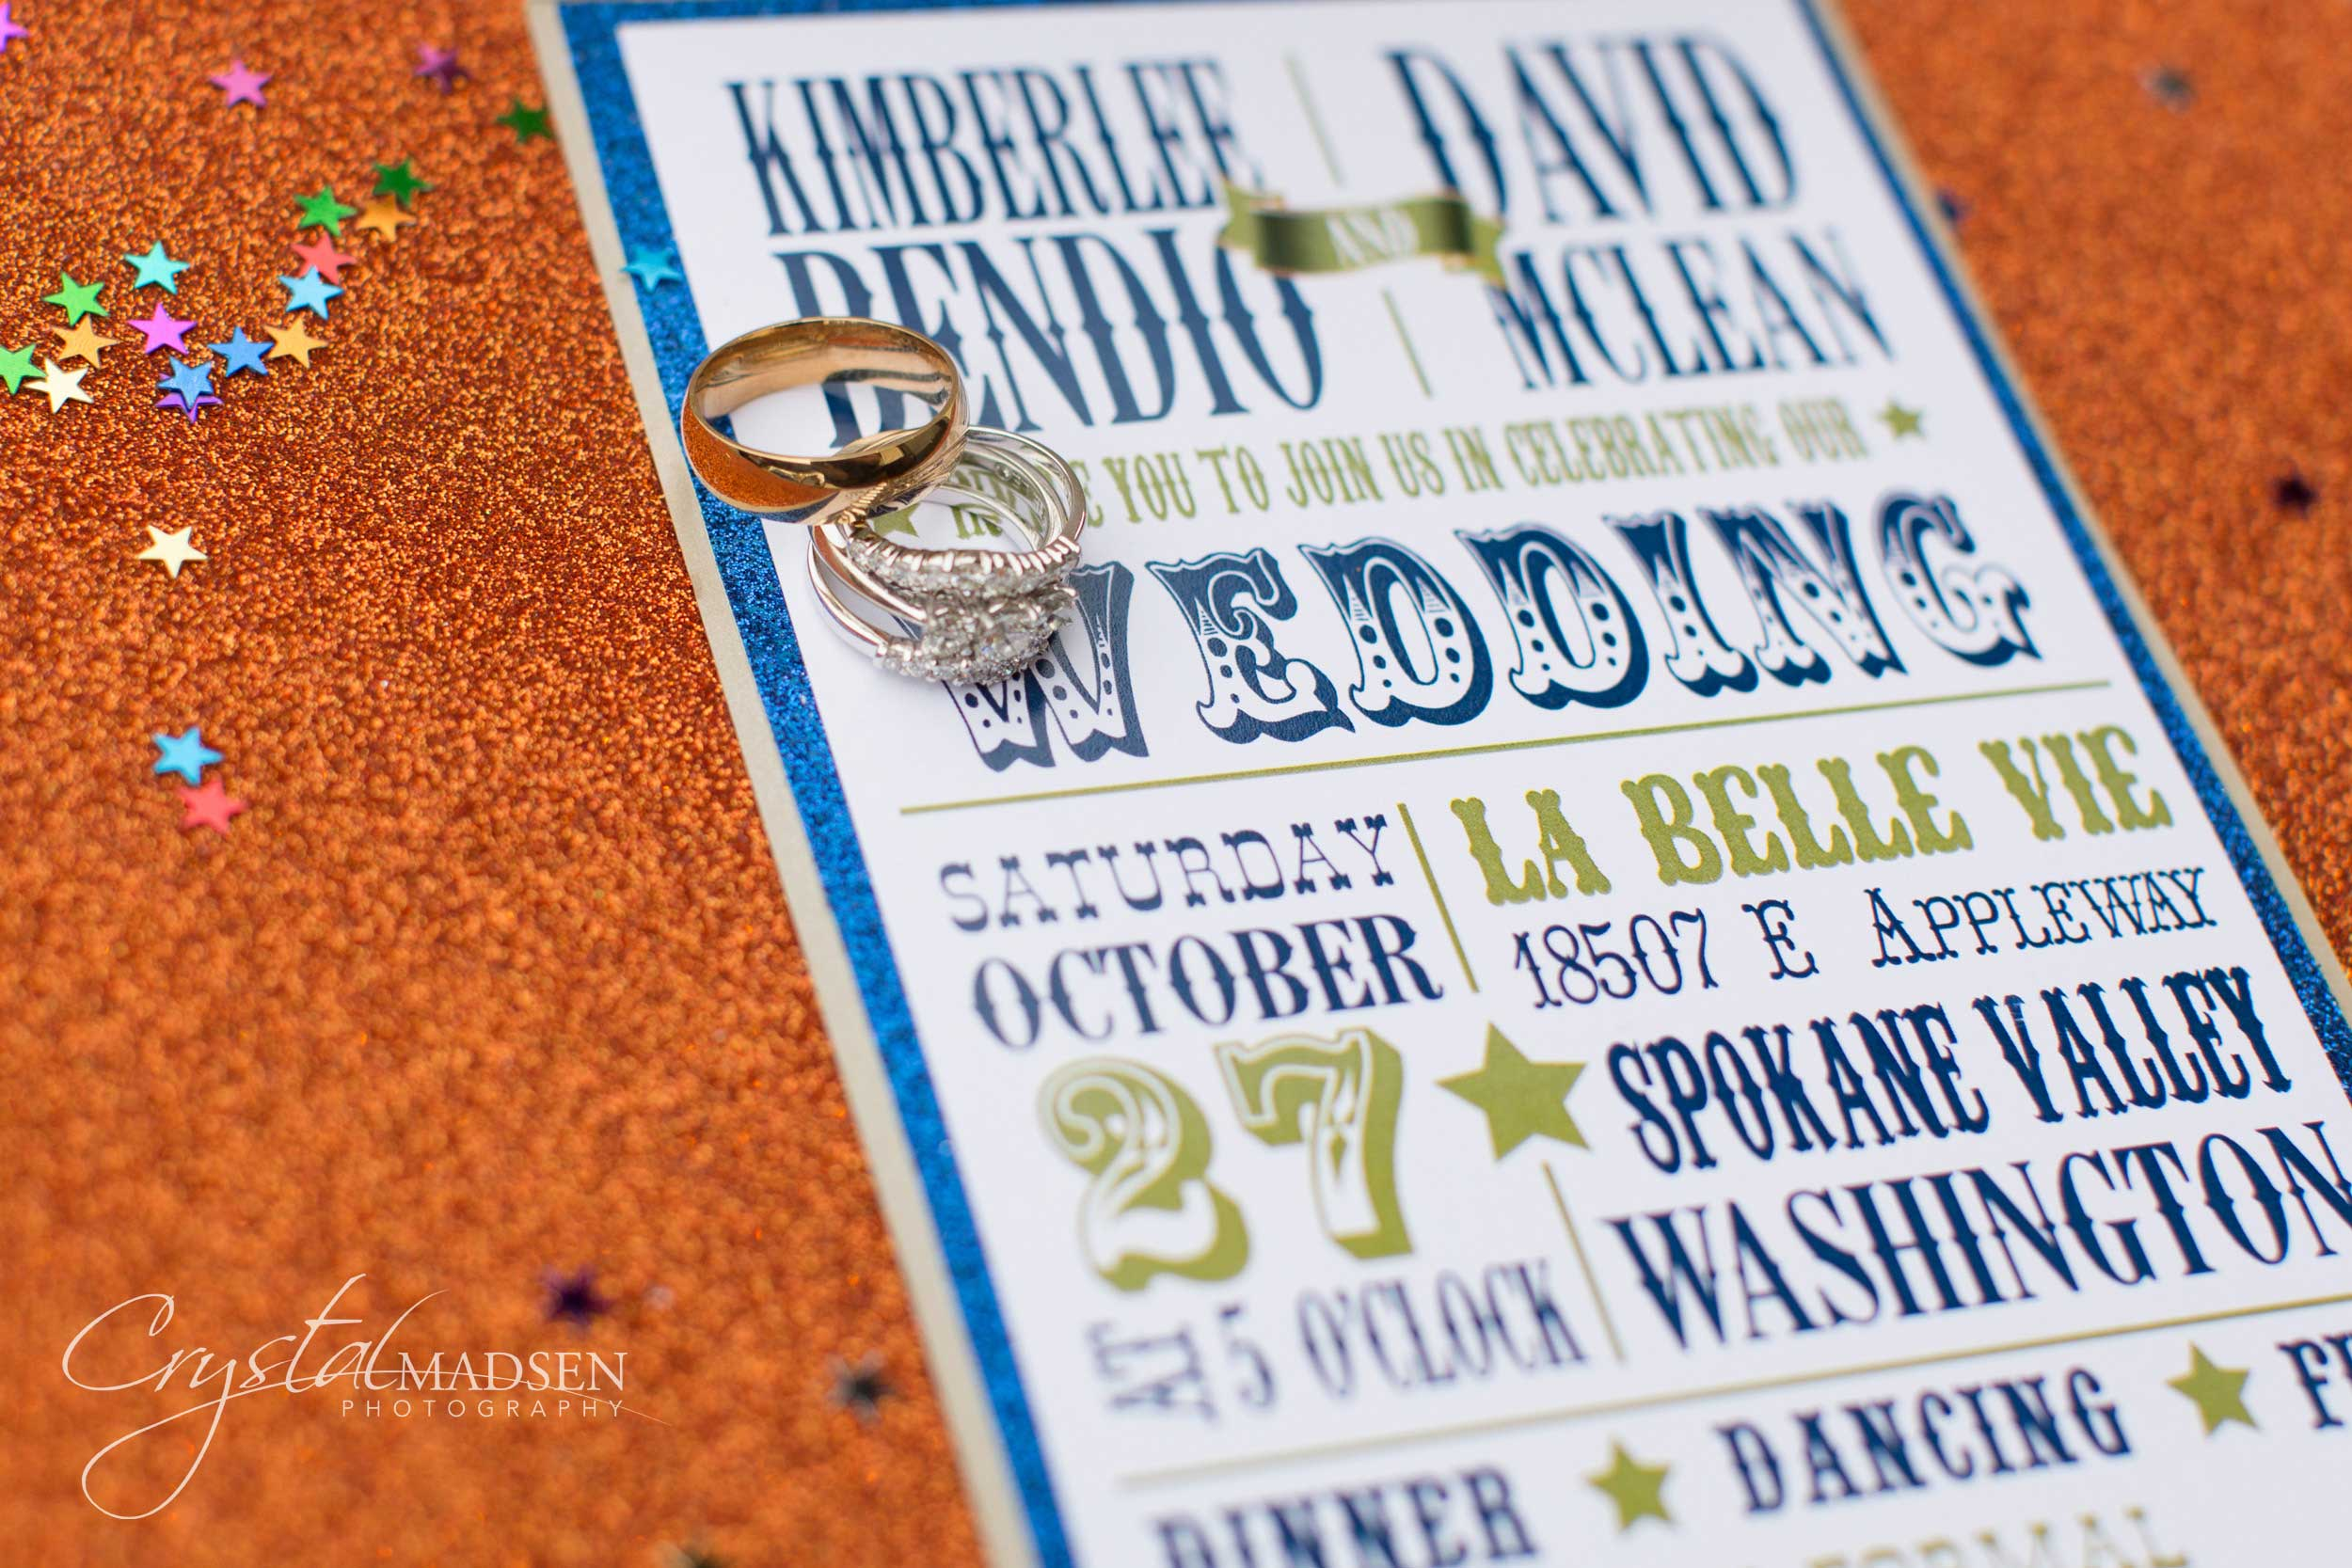 Carnival spokane wedding invitation